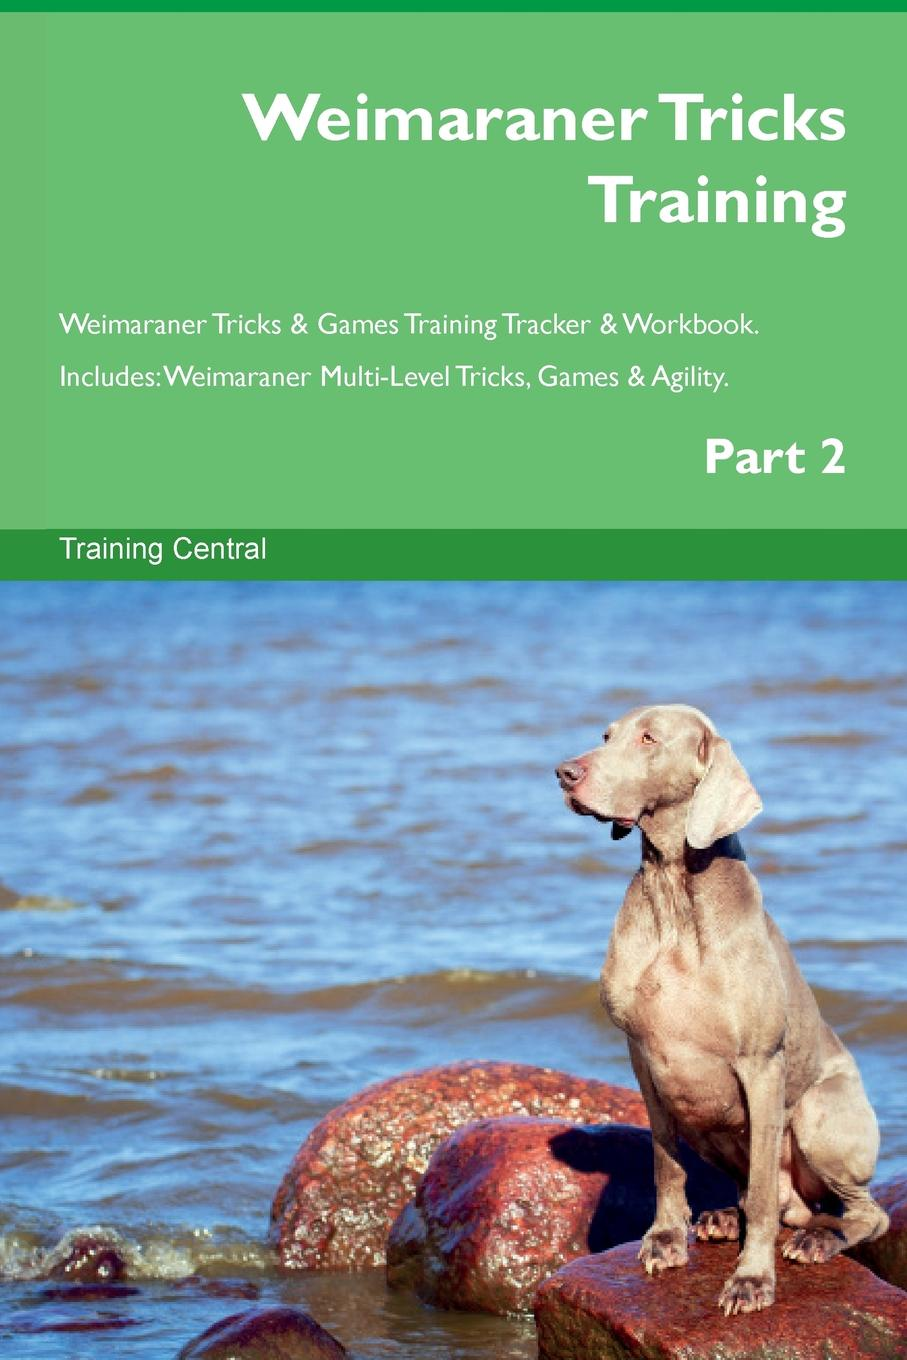 Training Central Weimaraner Tricks Training Weimaraner Tricks . Games Training Tracker . Workbook. Includes. Weimaraner Multi-Level Tricks, Games . Agility. Part 2 this book loves you